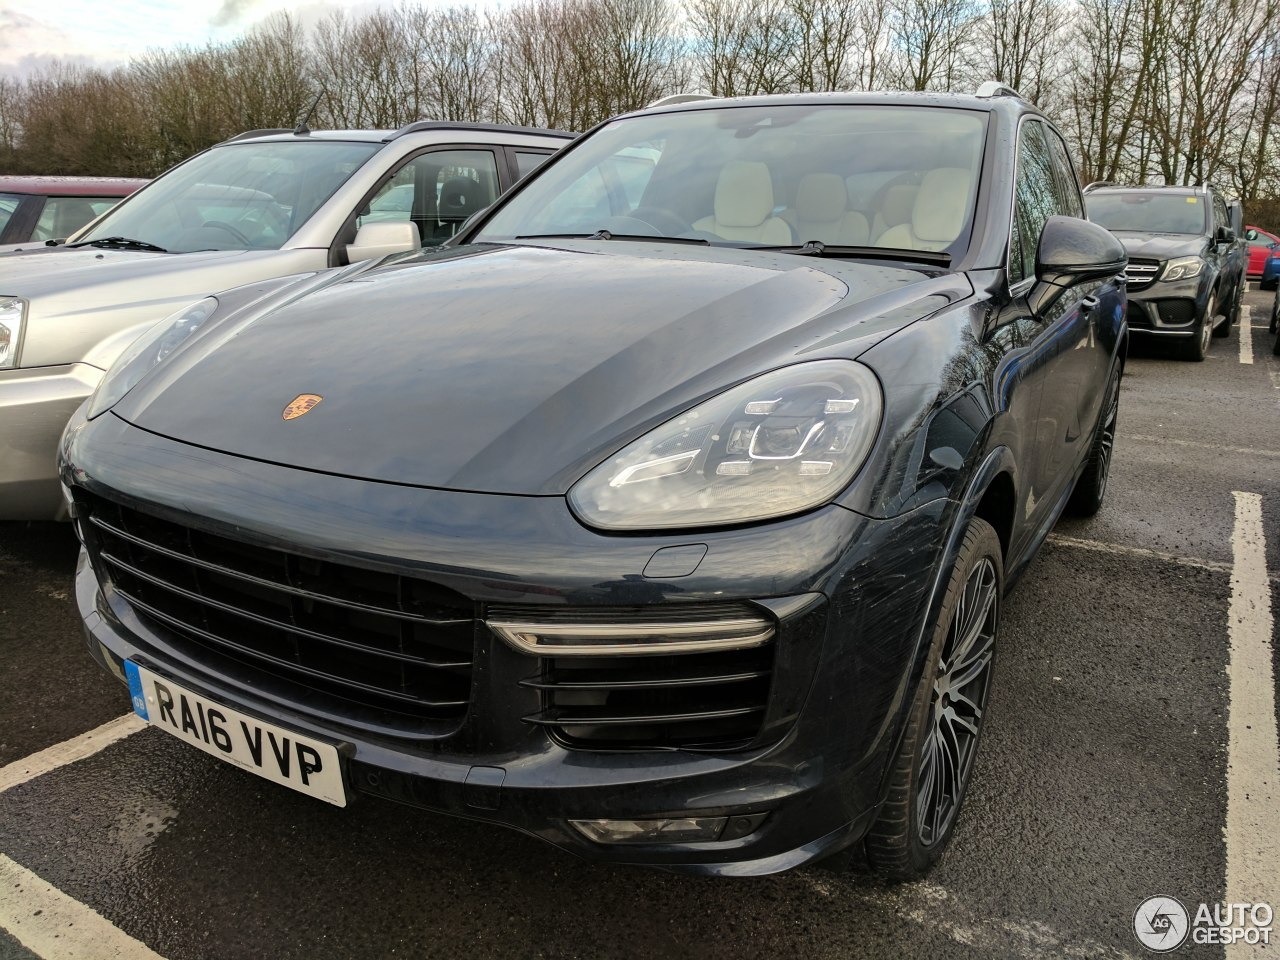 porsche 958 cayenne turbo s mkii 15 january 2017 autogespot. Black Bedroom Furniture Sets. Home Design Ideas